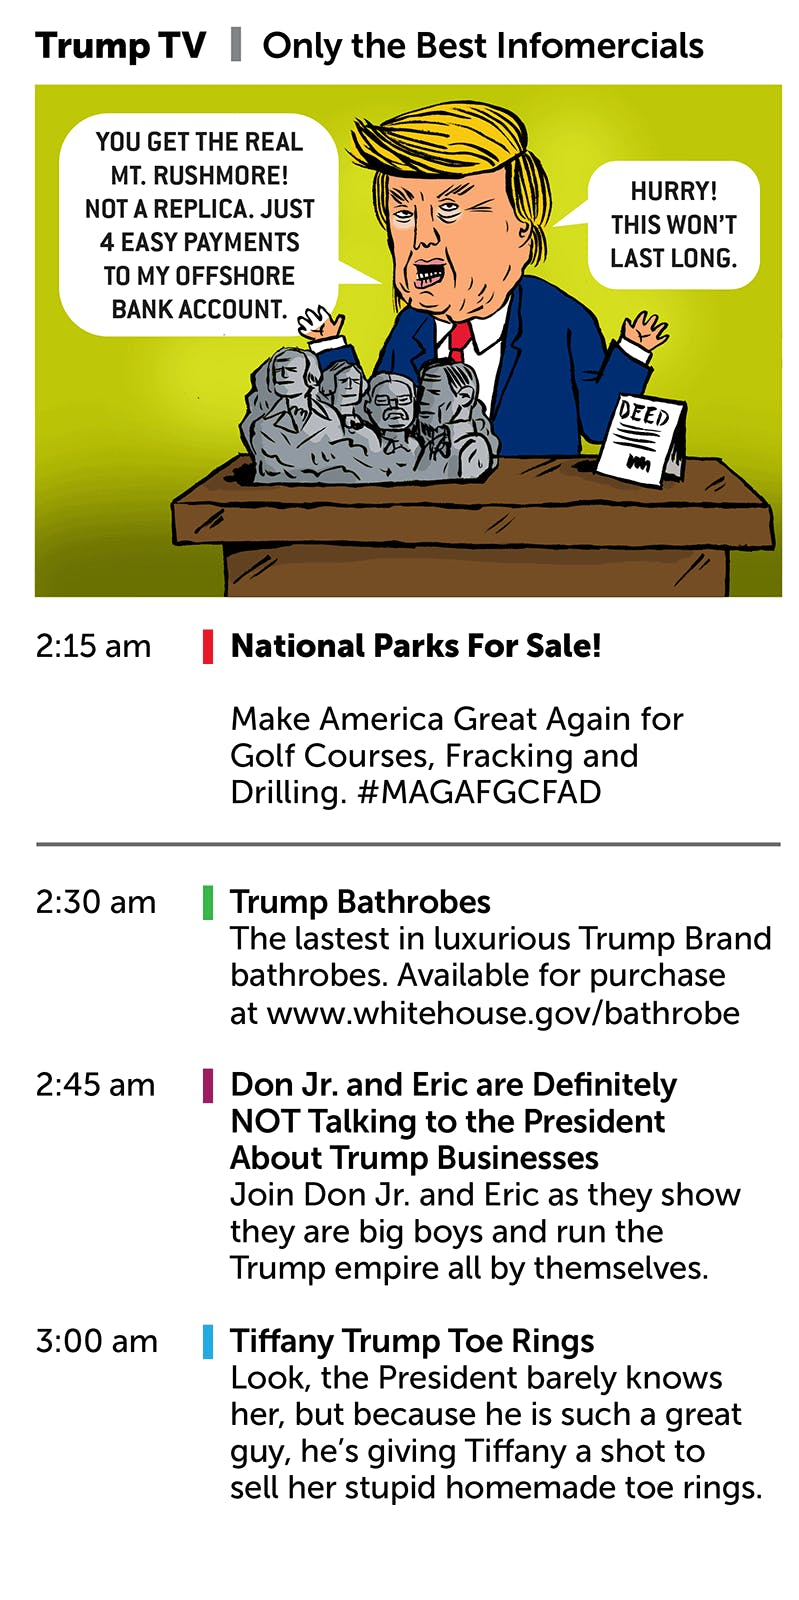 Your Trump TV Guide - by Mark Kaufman